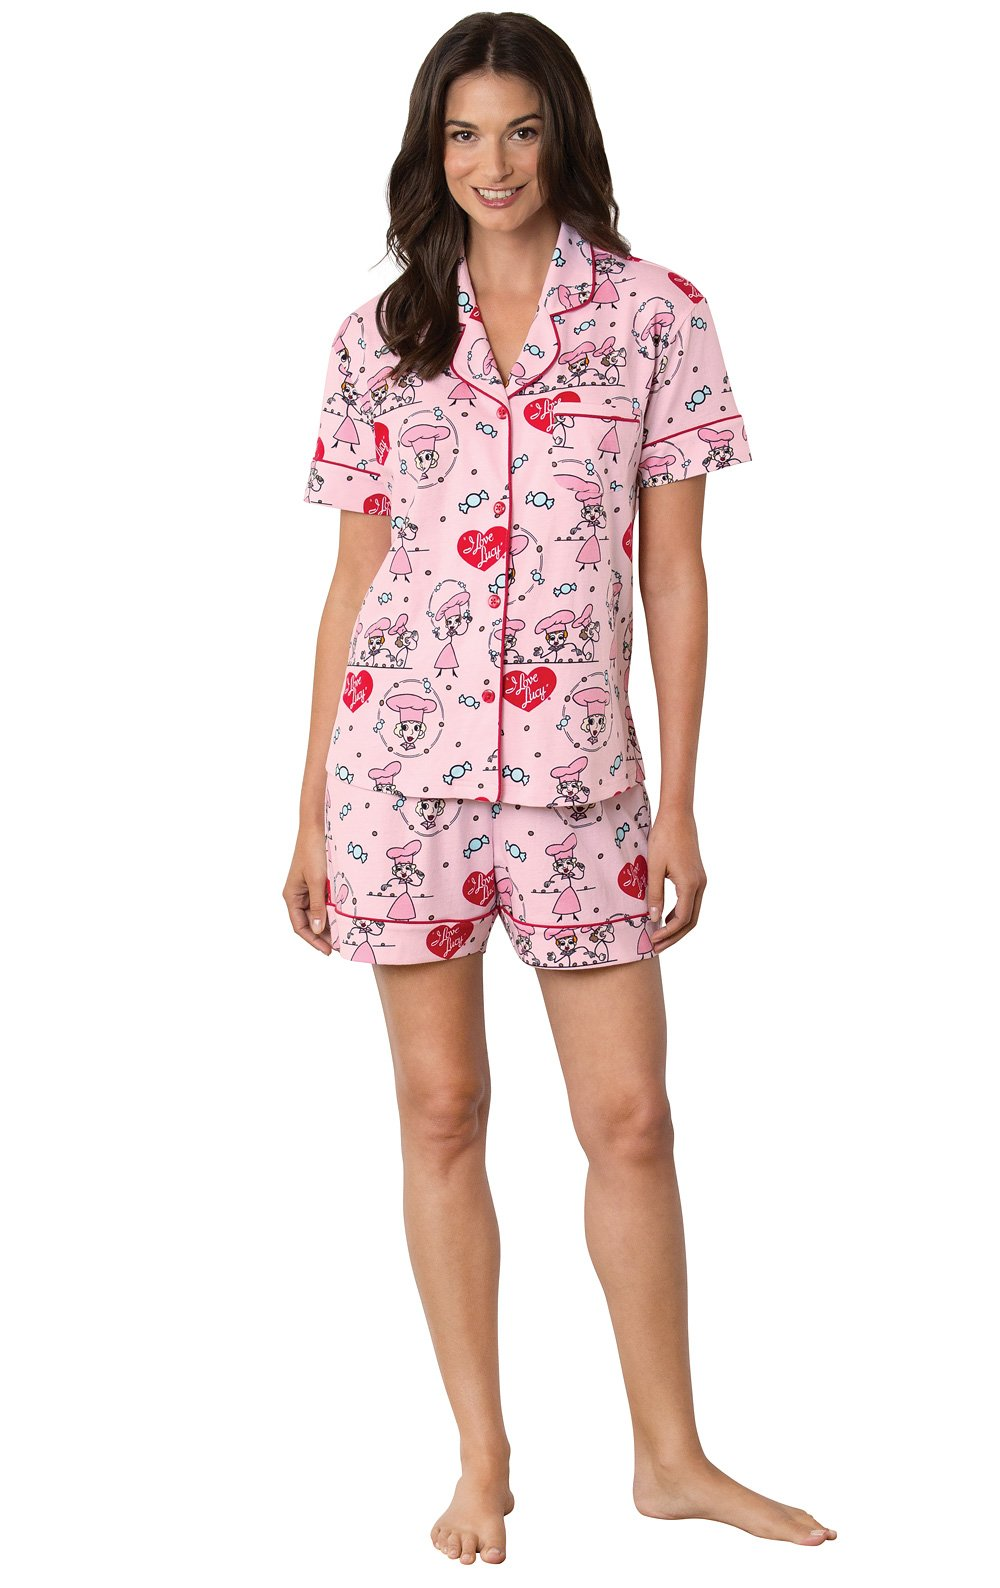 PajamaGram I Love Lucy Chocolate Factory Short Women's Pajamas, Pink, XLG (16)